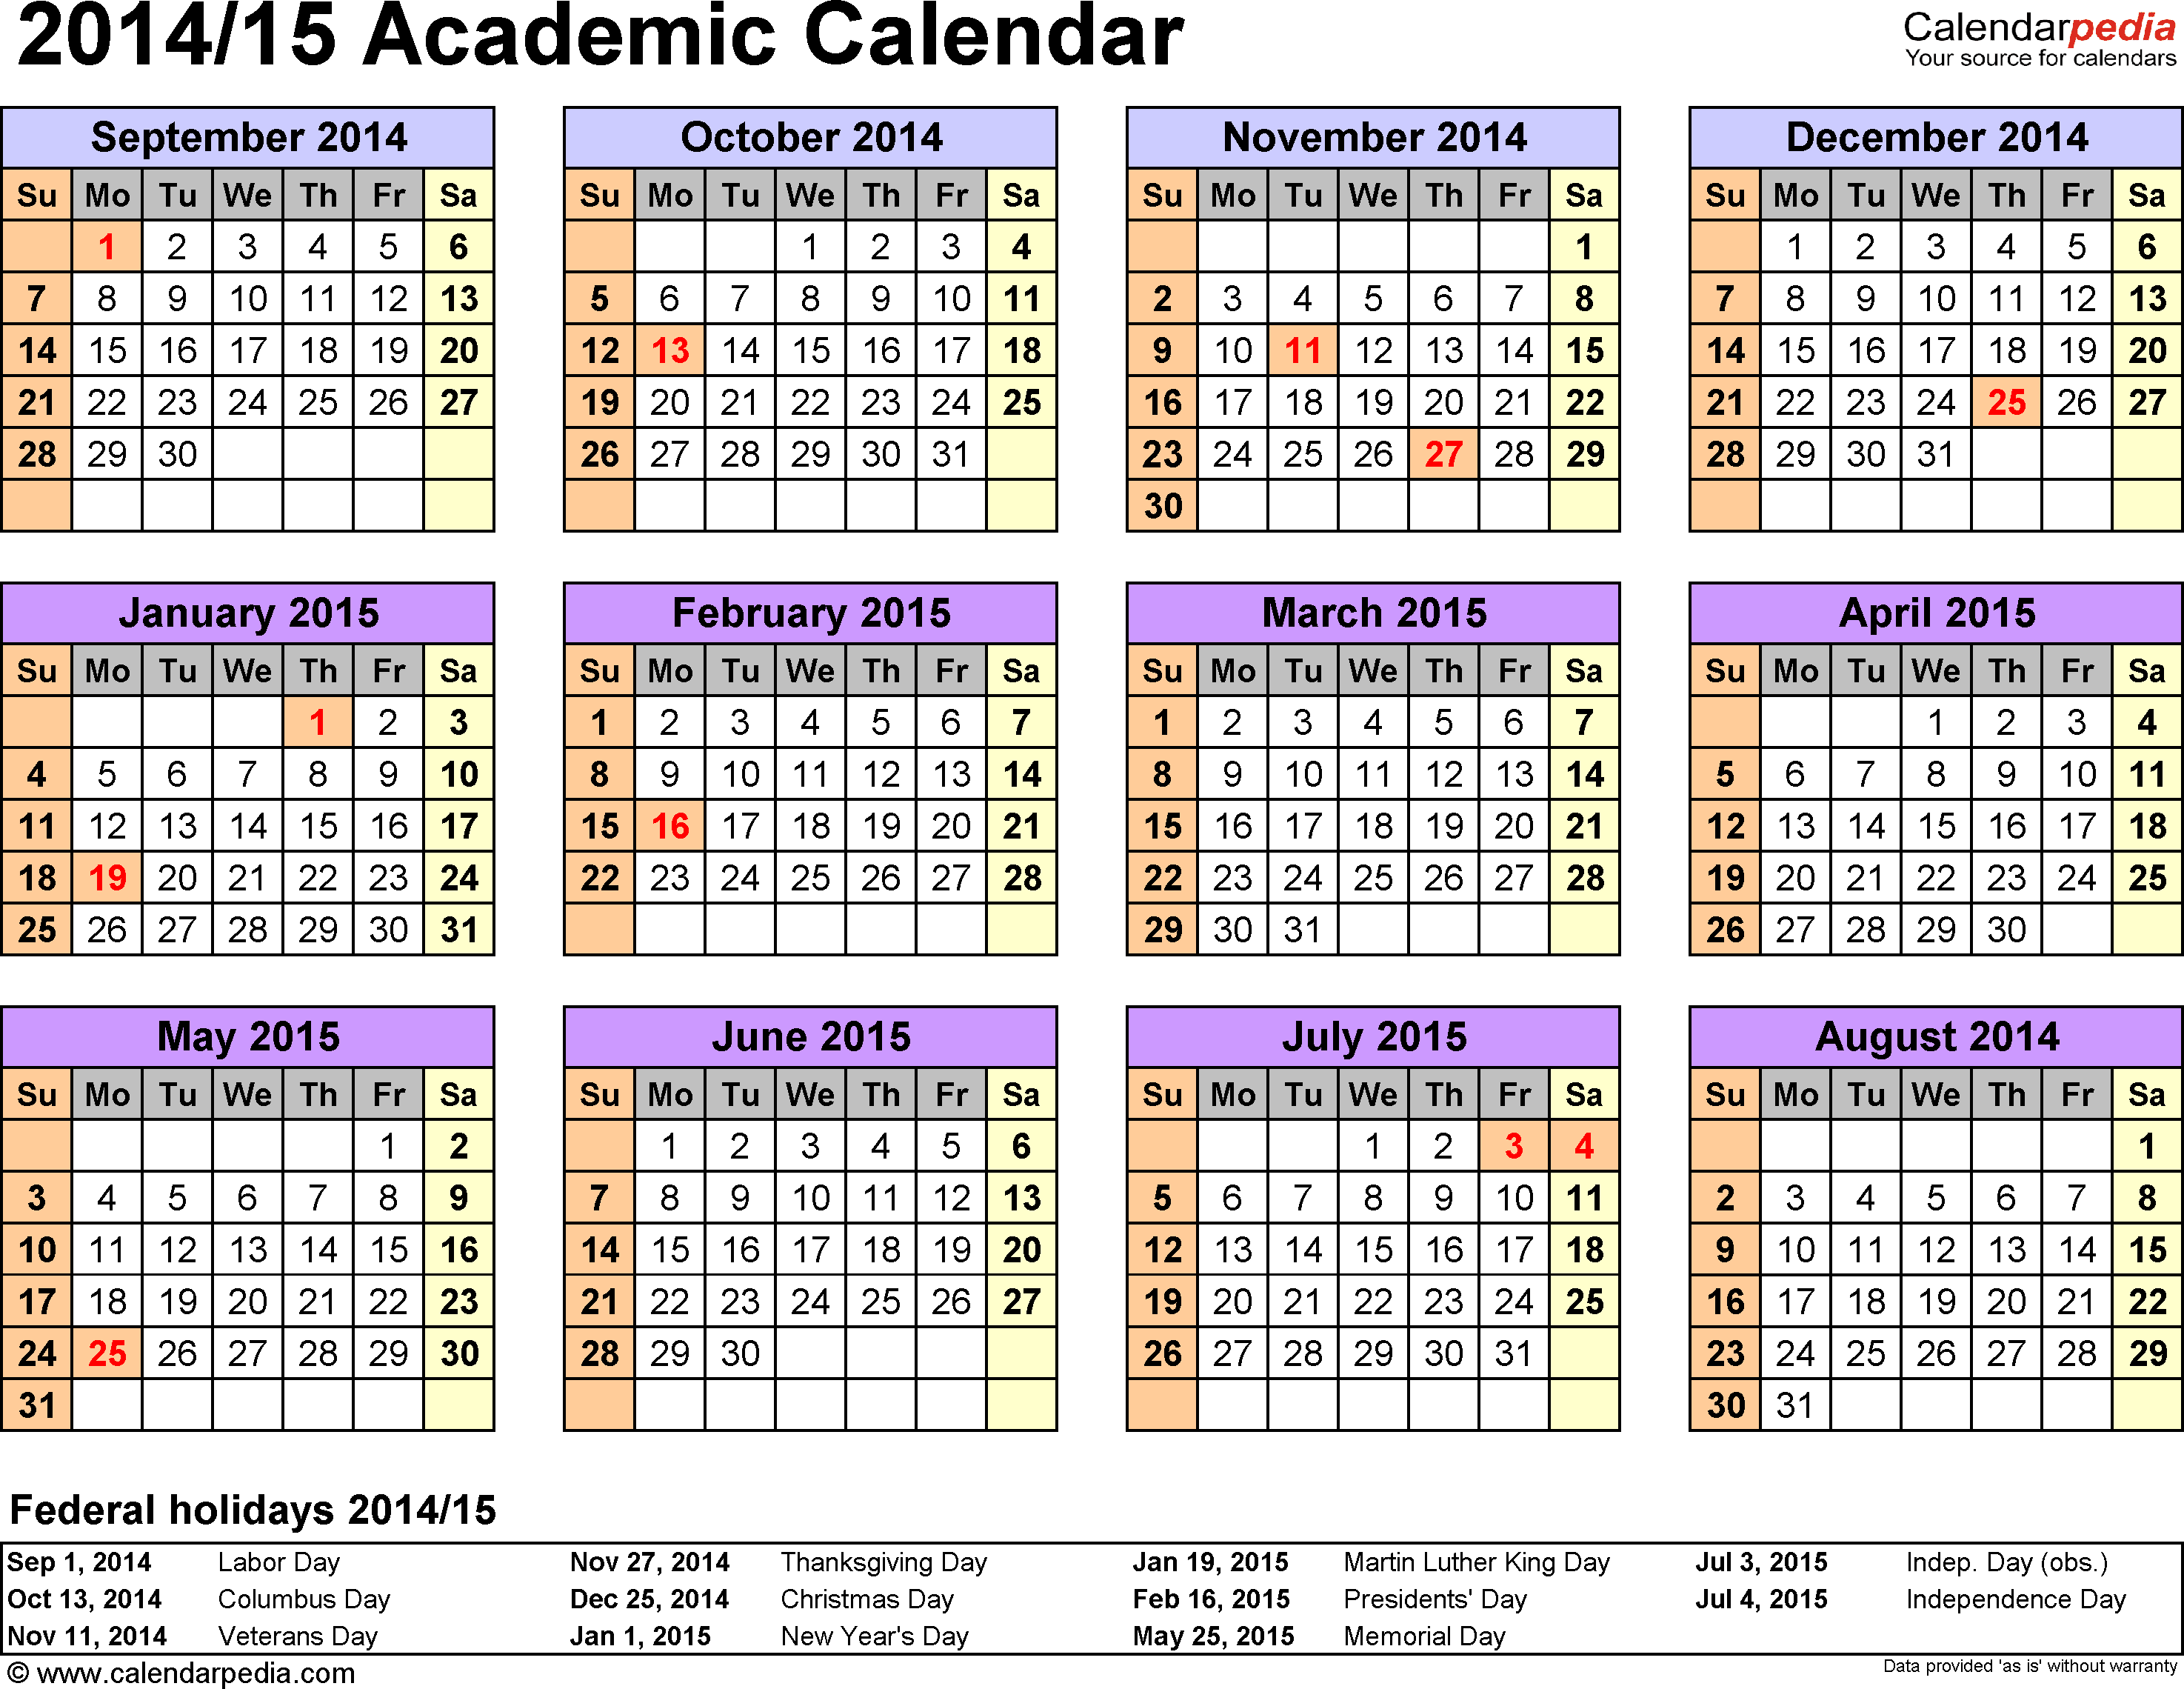 Template 3: Academic calendar 2014/15 for Microsoft Excel (.xlsx file), landscape, 1 page, year at a glance